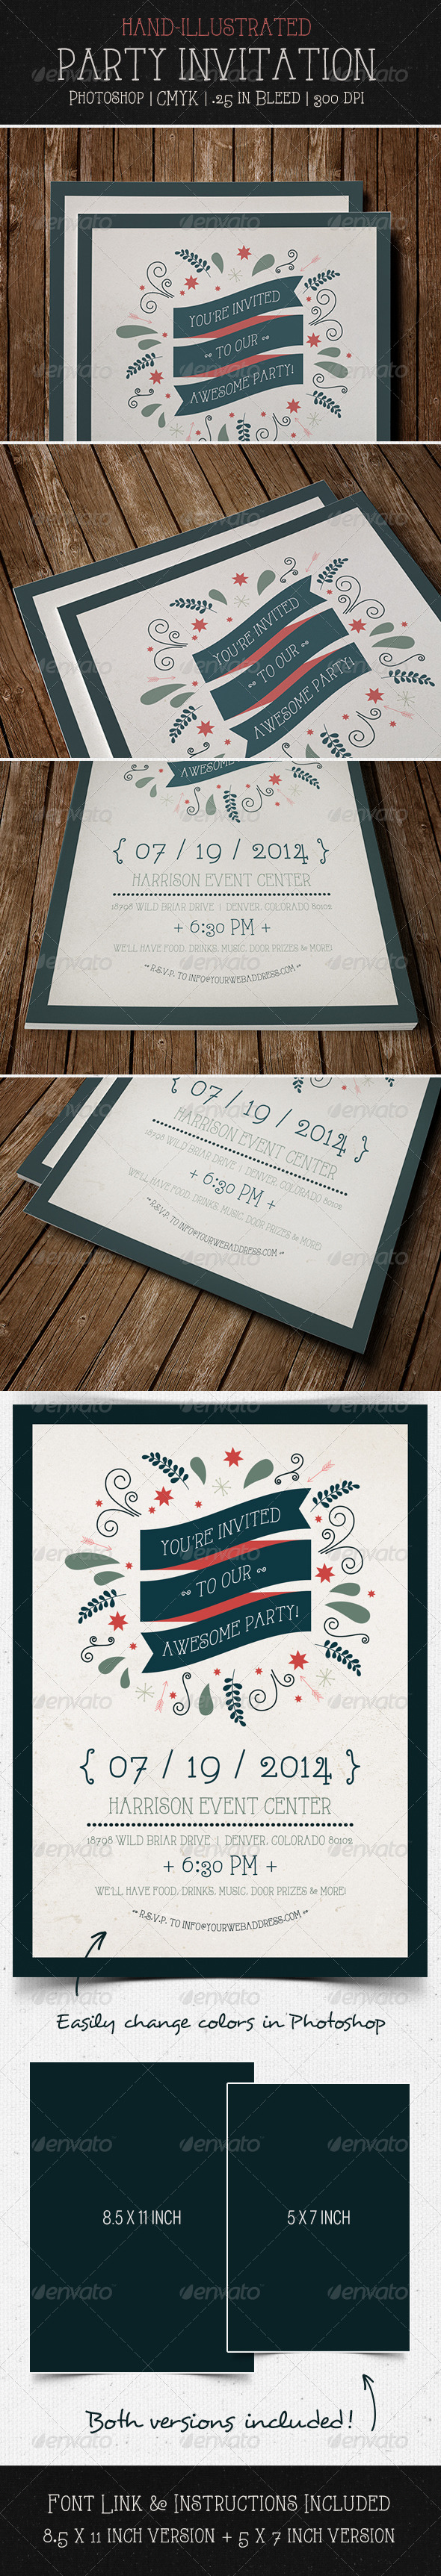 GraphicRiver Party Invitation Flyer Postcard 5455261